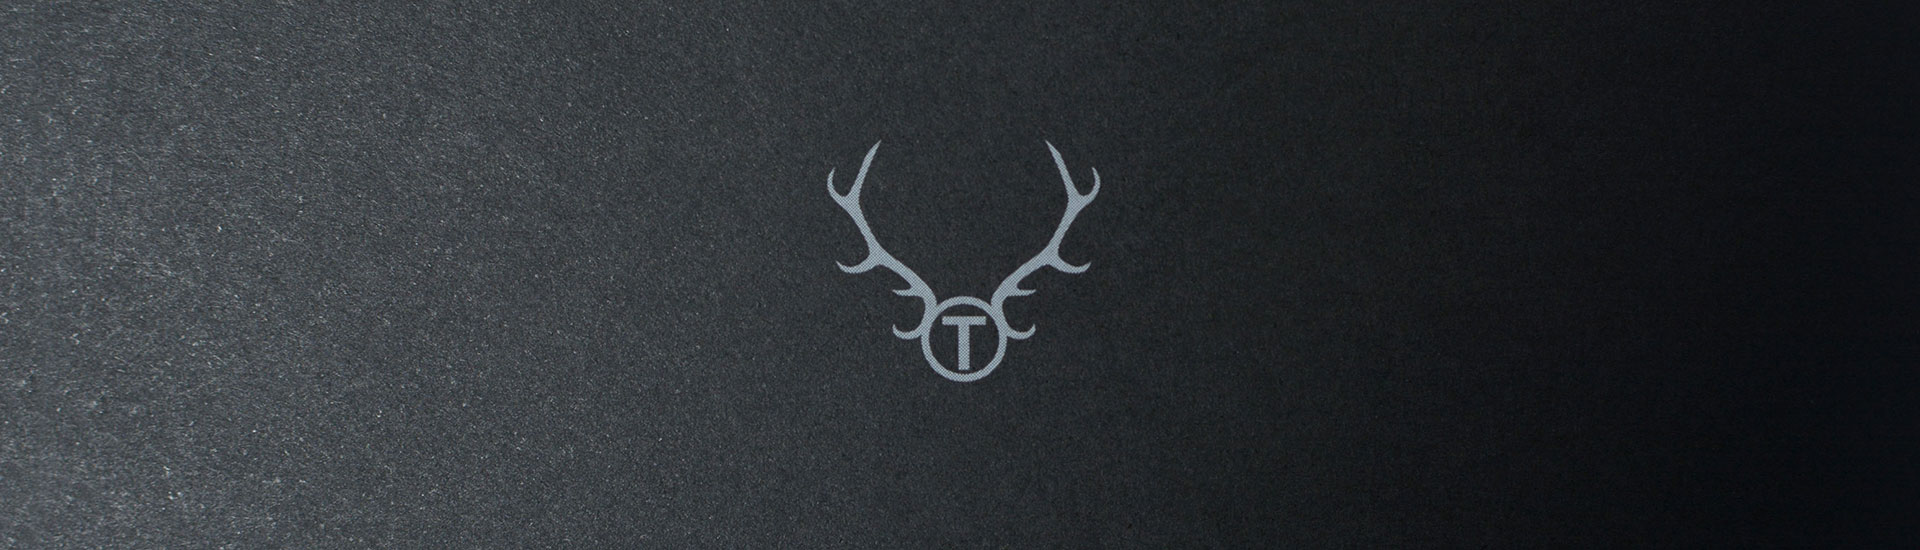 marcello tully - the key ingredient, cookbook, logo